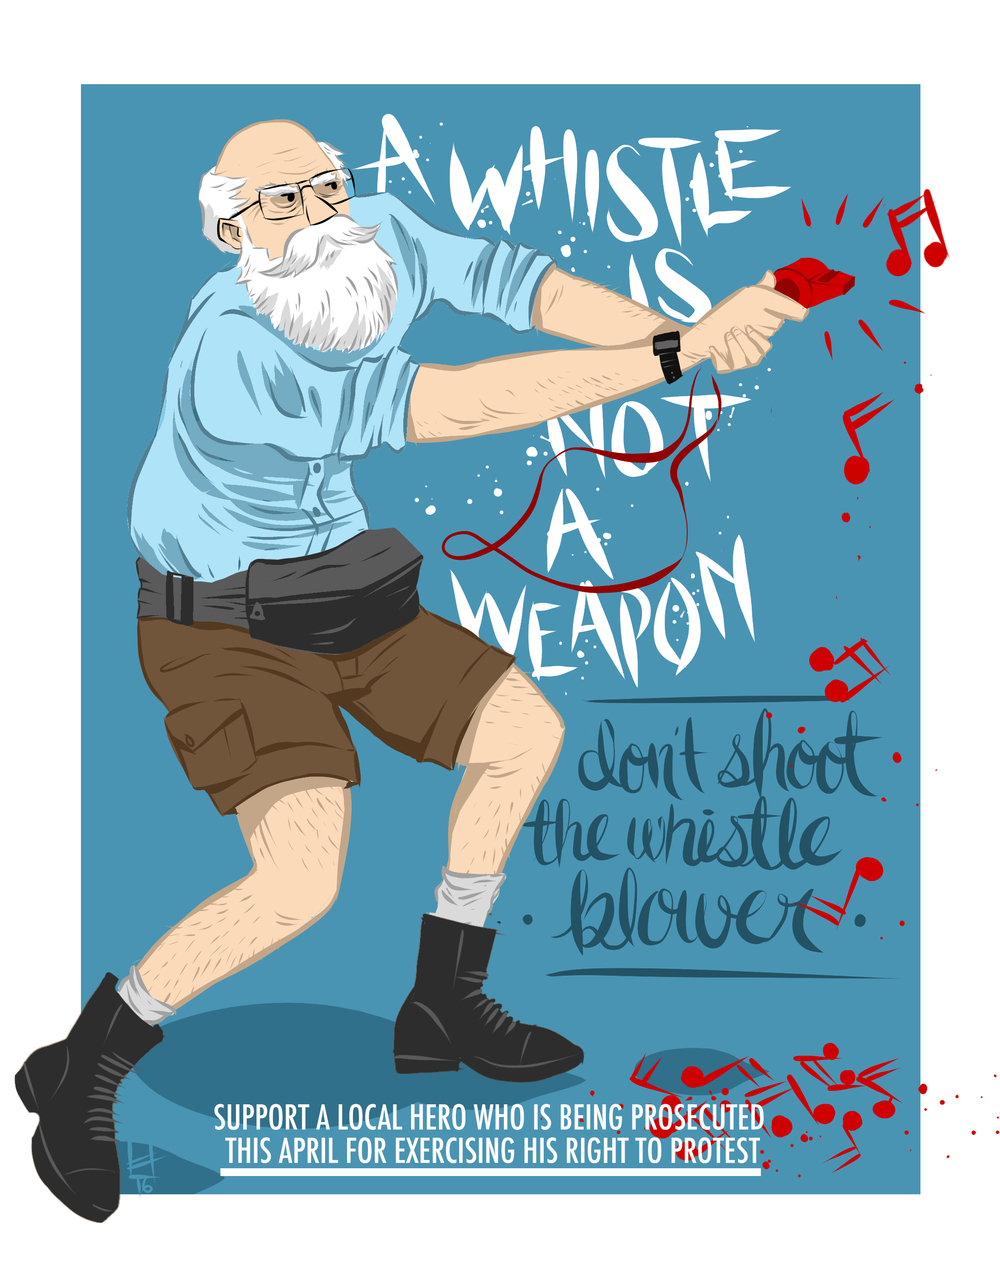 Whistle not weapon_writing.jpg